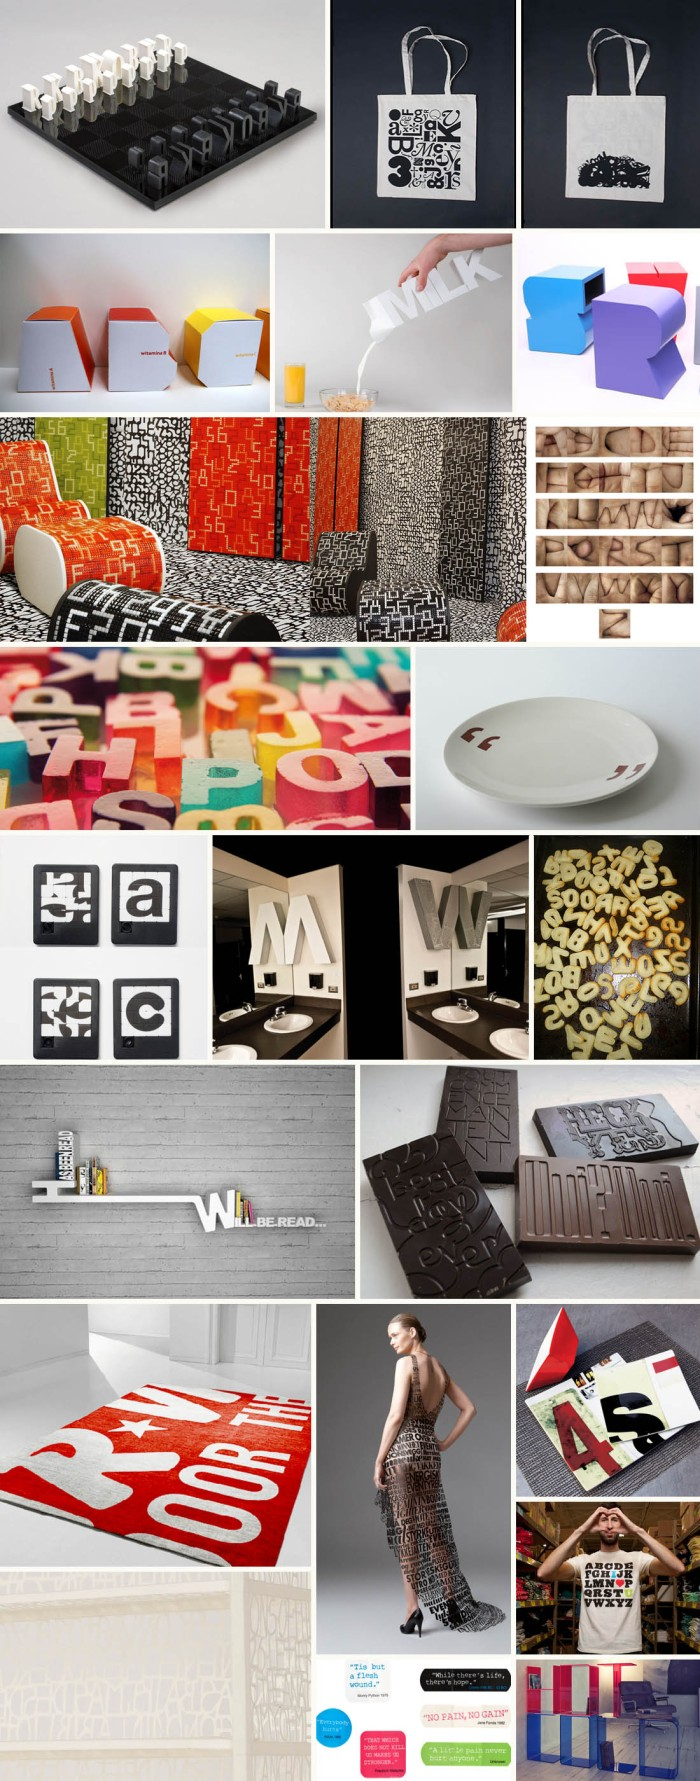 Typography on objects from food to housewares and clothes. Letters, Type, Numbers, typographied objects